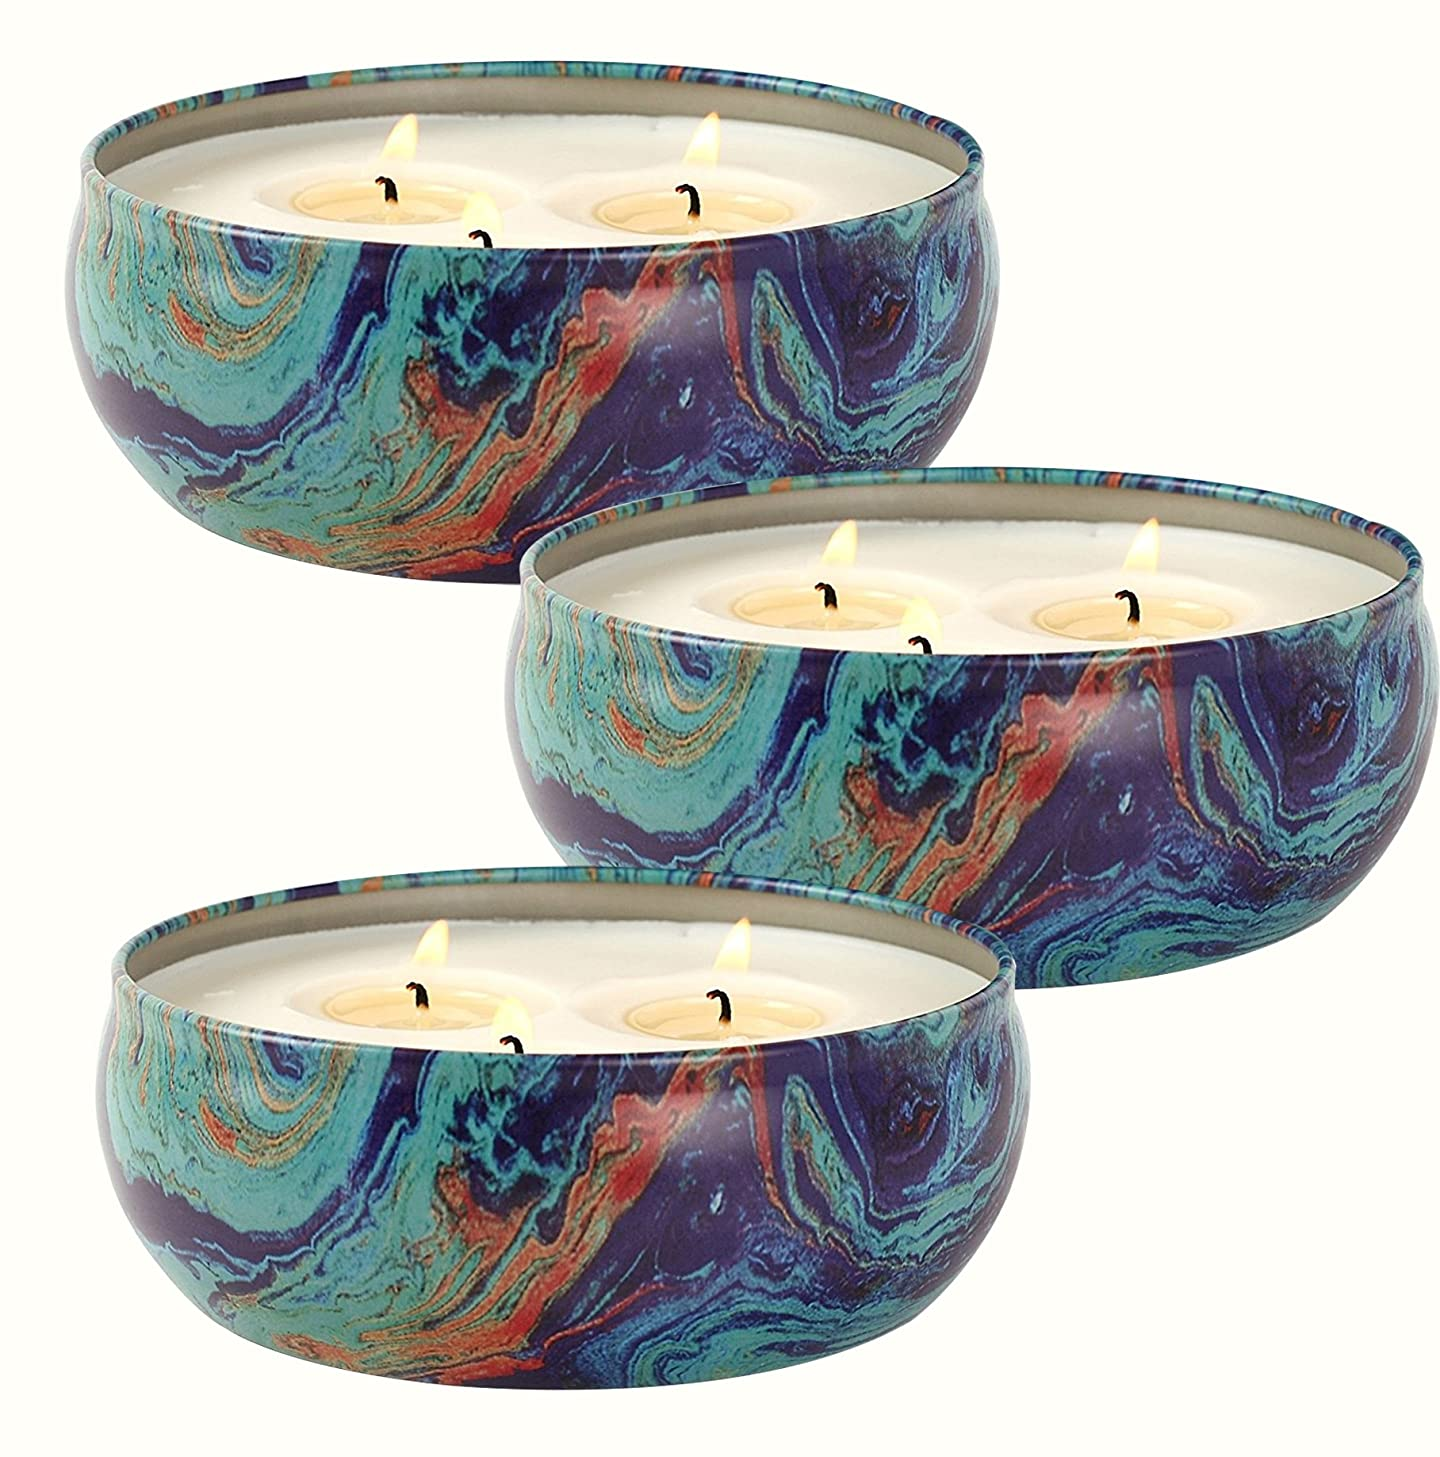 LA JOLIE MUSE Citronella Candles Set 3, 12 oz Each Scented Candle Natural Soy Wax, Outdoor and Indoor jcjzqmage